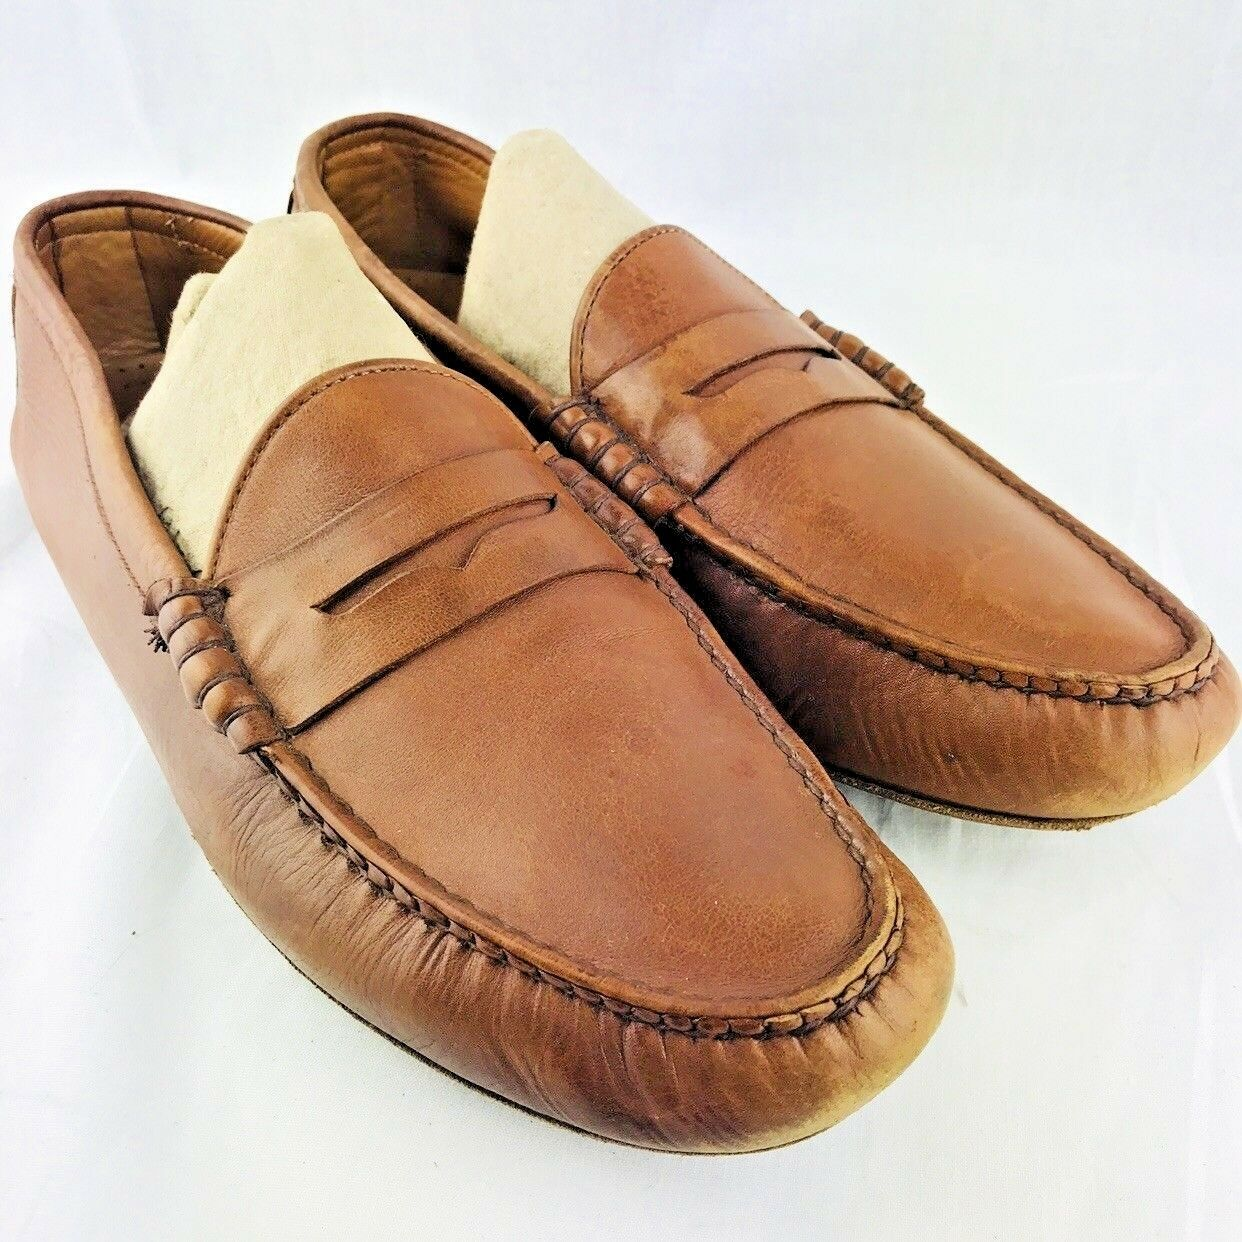 Allen Edmonds Winthrop Uomo's 11 D Penny Loafers Brown Pelle Driving Moccasins